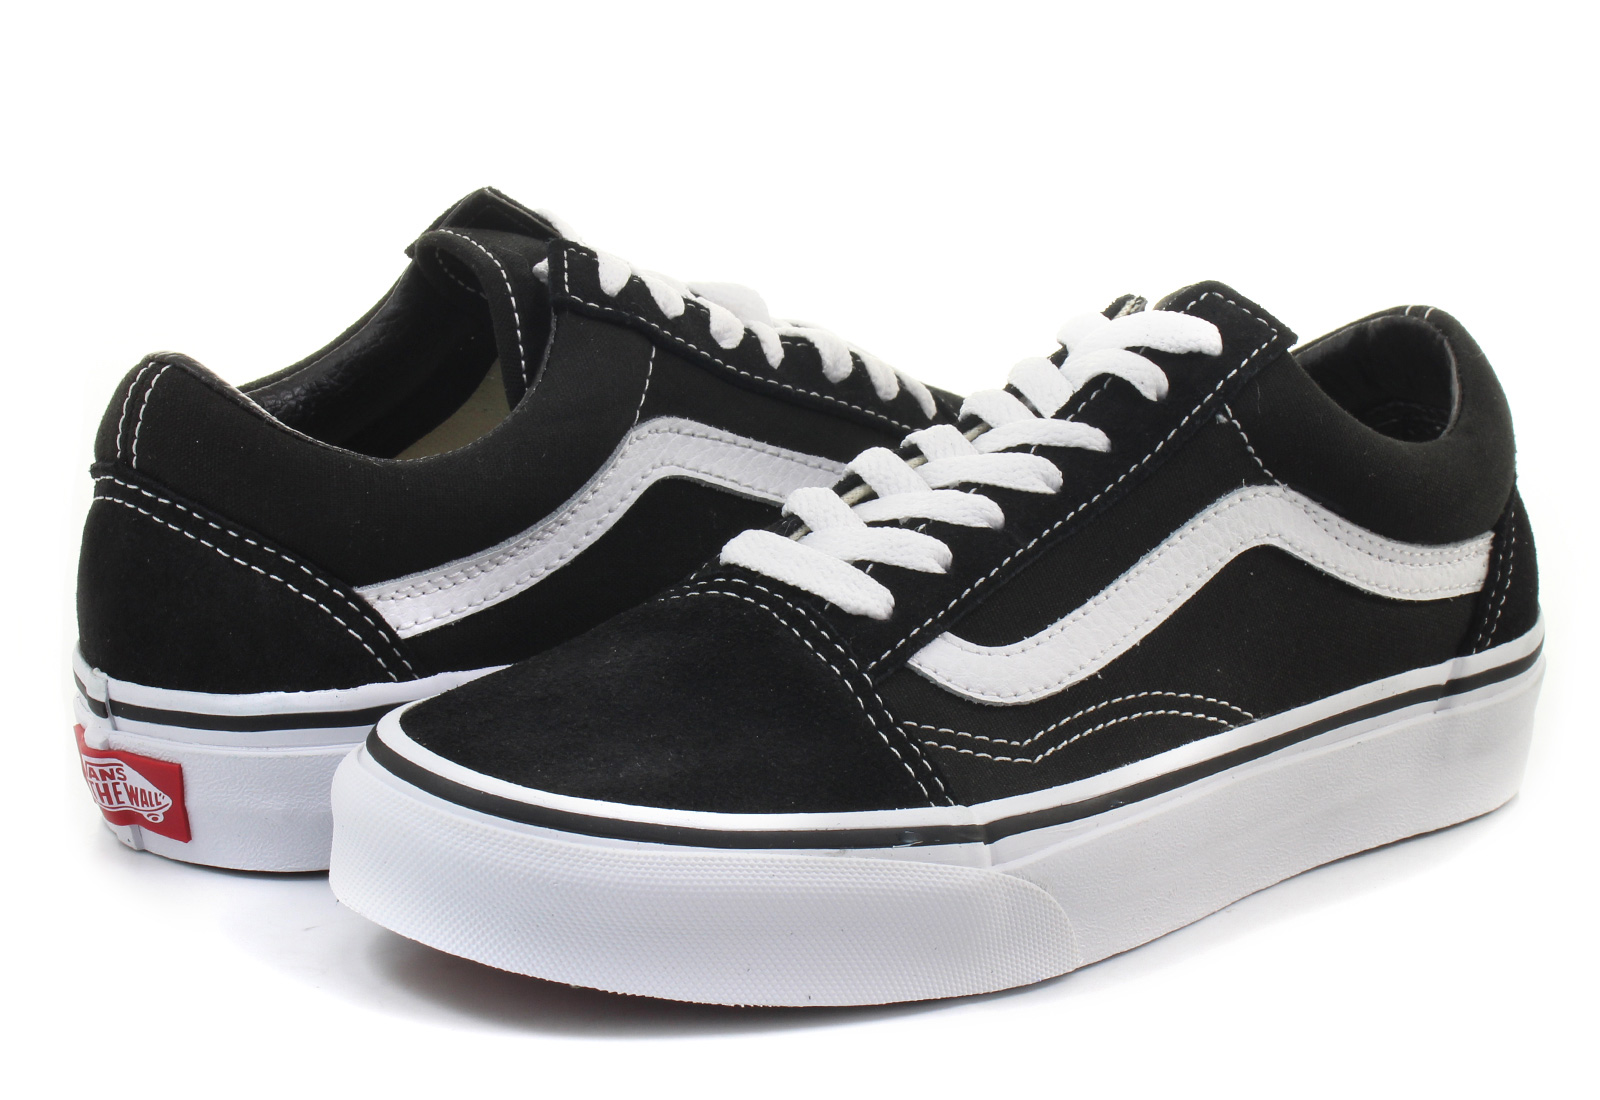 536a106e8138dd Vans Niske Cipele Crne Cipele - Ua Old Skool - Office Shoes - Online ...